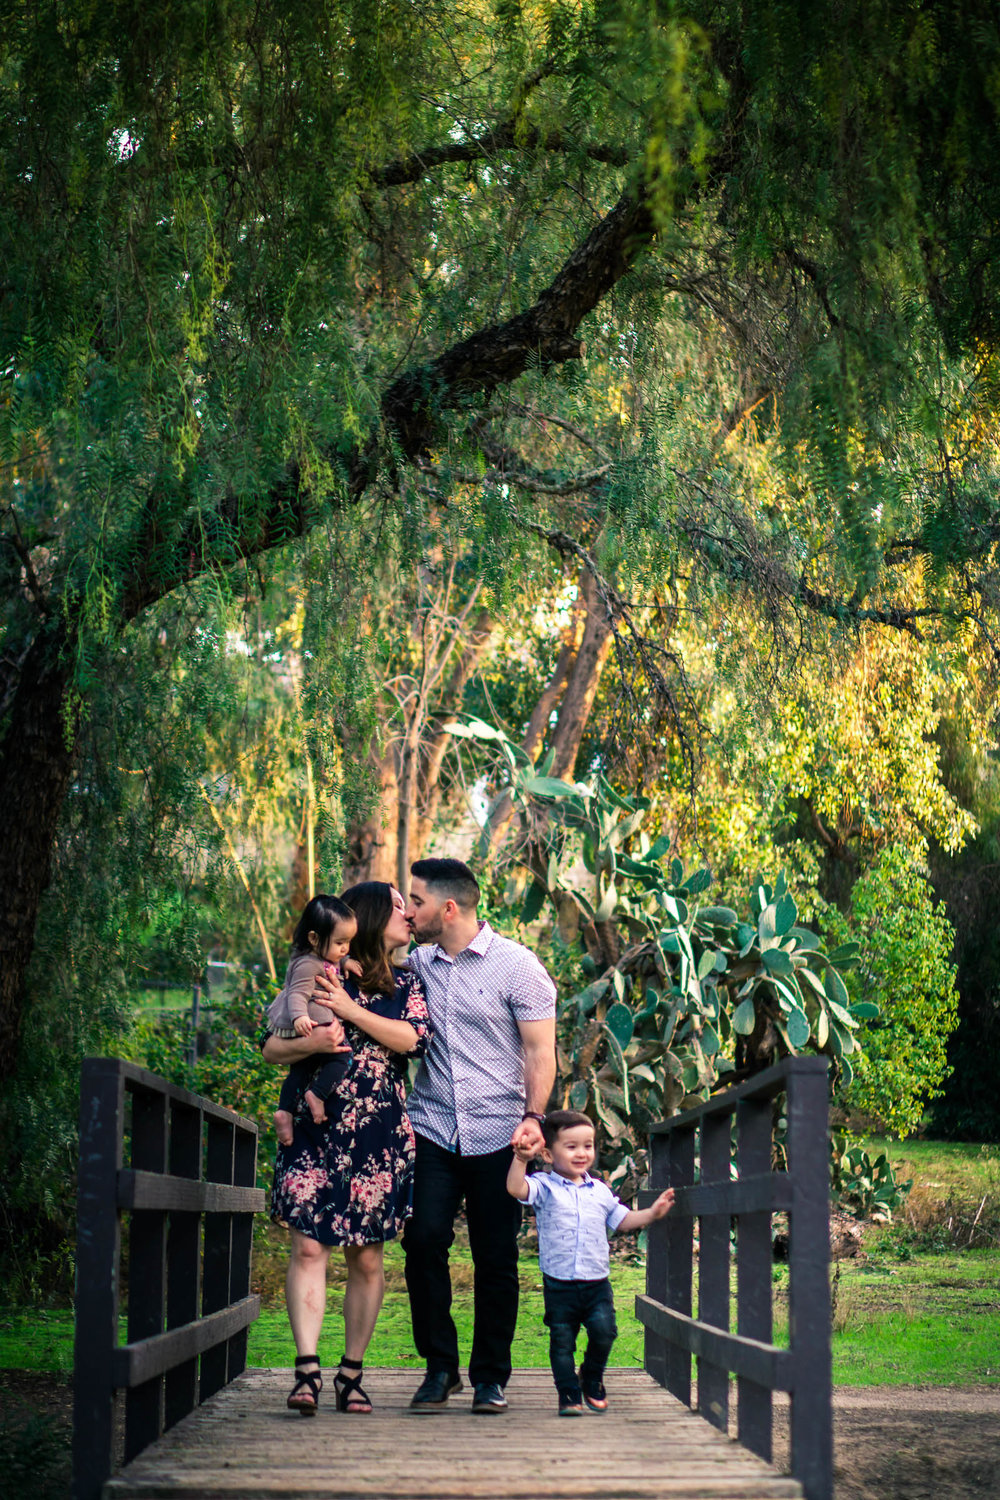 photo of afamily walking across a bridge through a park during a family portrait session on the juanita cooke trail in fullerton orange county taken by joseph barber photography